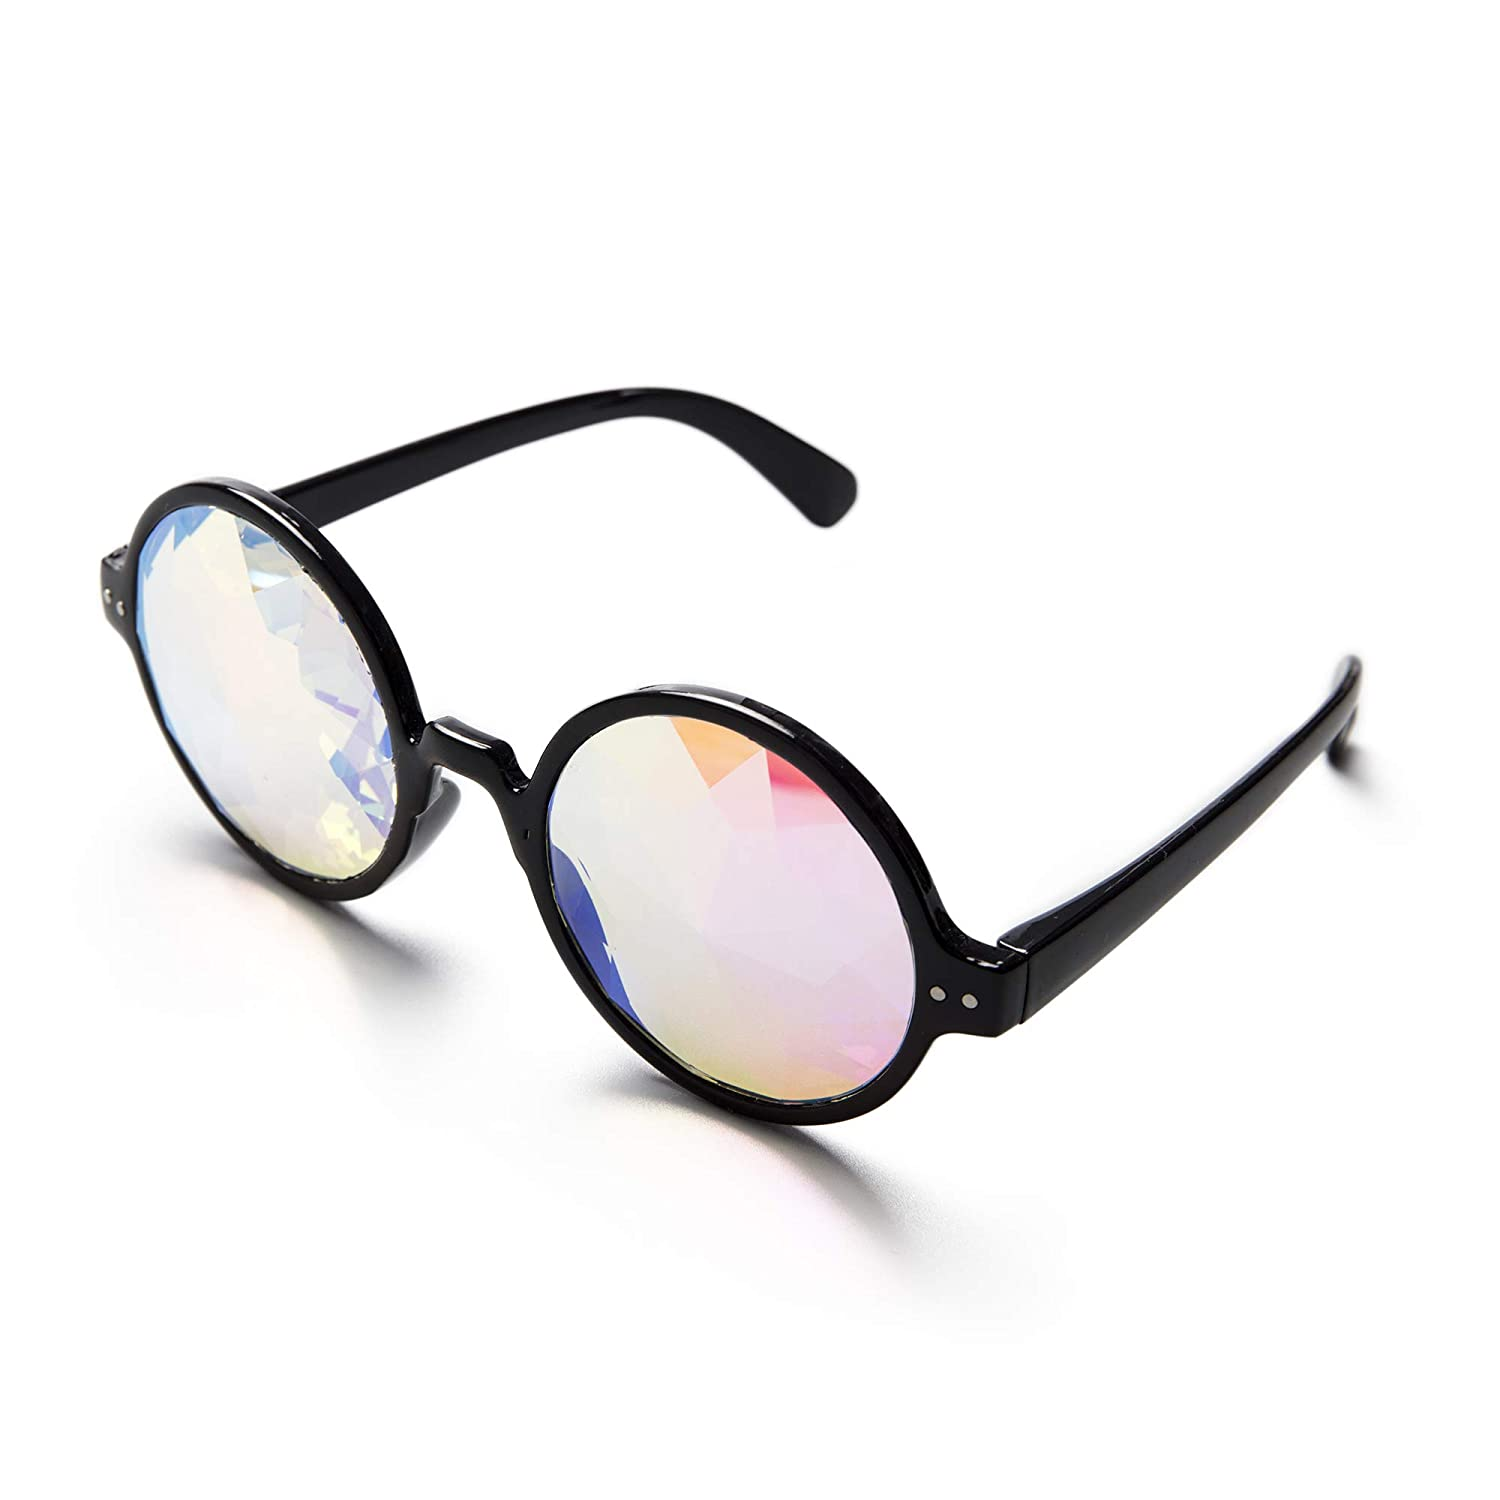 KOLCY Kaleidoscope Glasses Rainbow Prism Sunglasses Goggles Cosplay Party